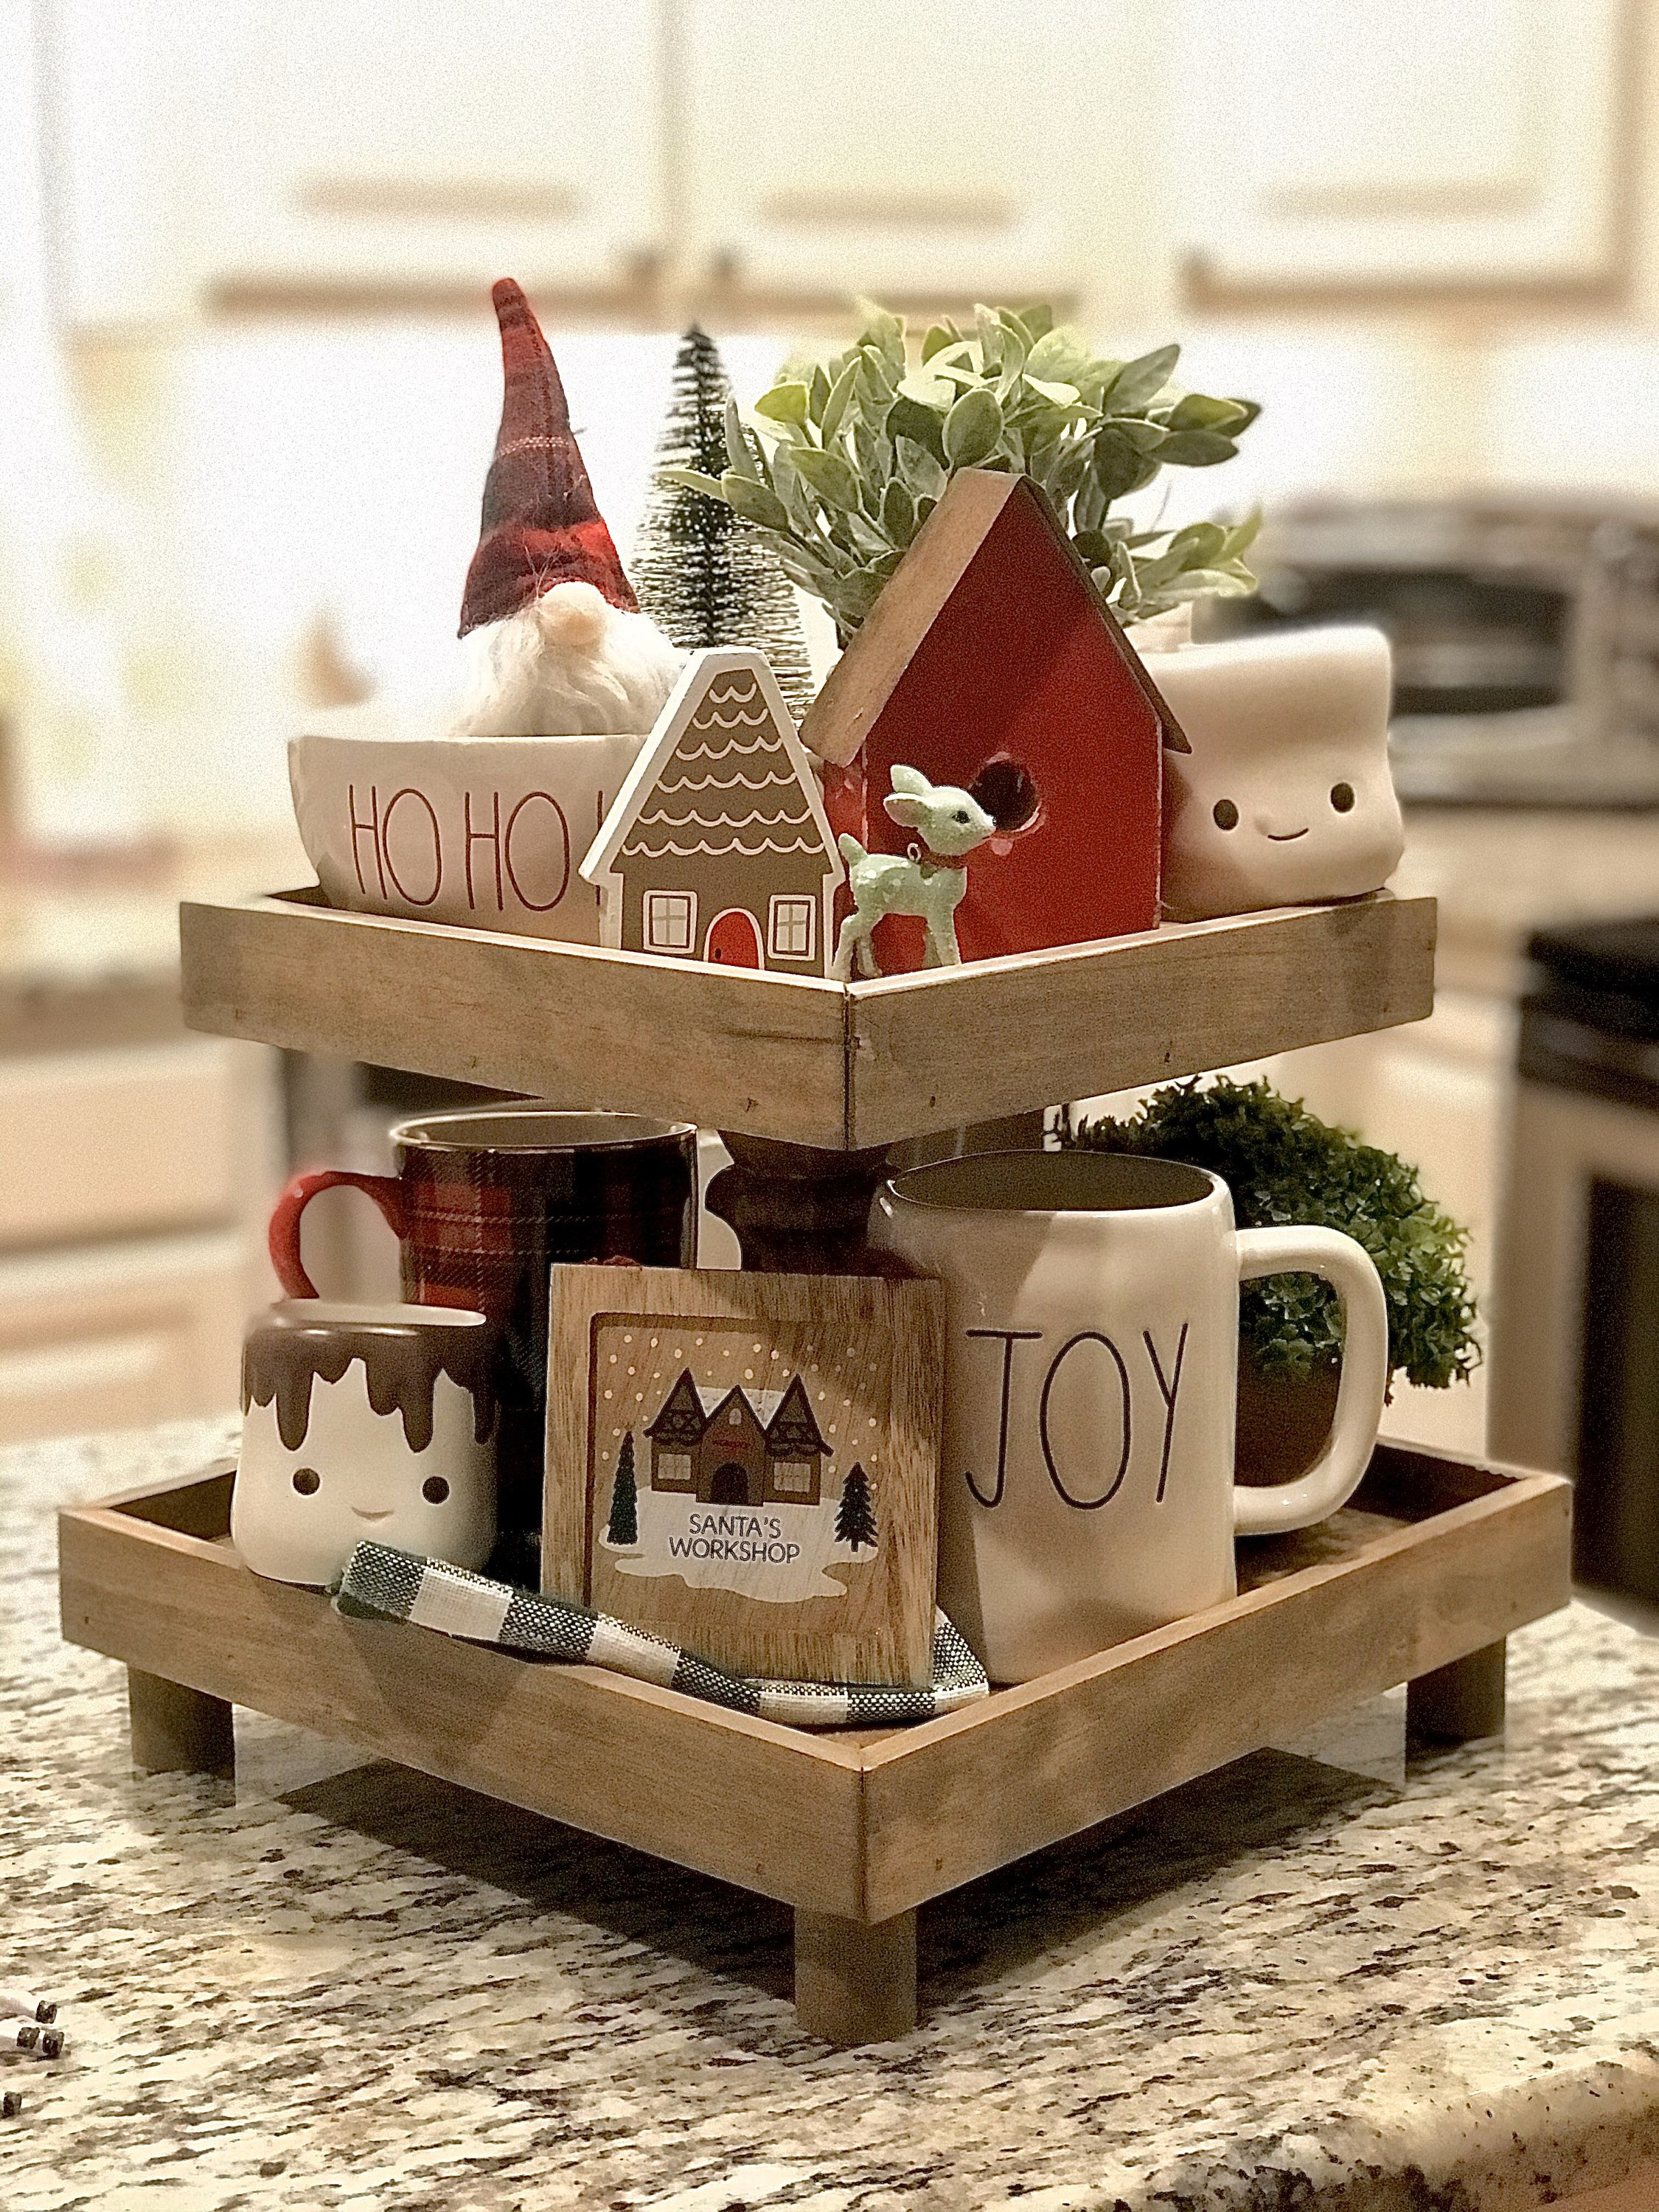 Tiered Tray Tier Tray Wooden Decor Stand Tier Tray Decor Christmas Decor Cake Stand Farmhouse Kitchen Kitchen Display Display Stand Tiered Tray Diy Tray Decor Tiered Tray Decor